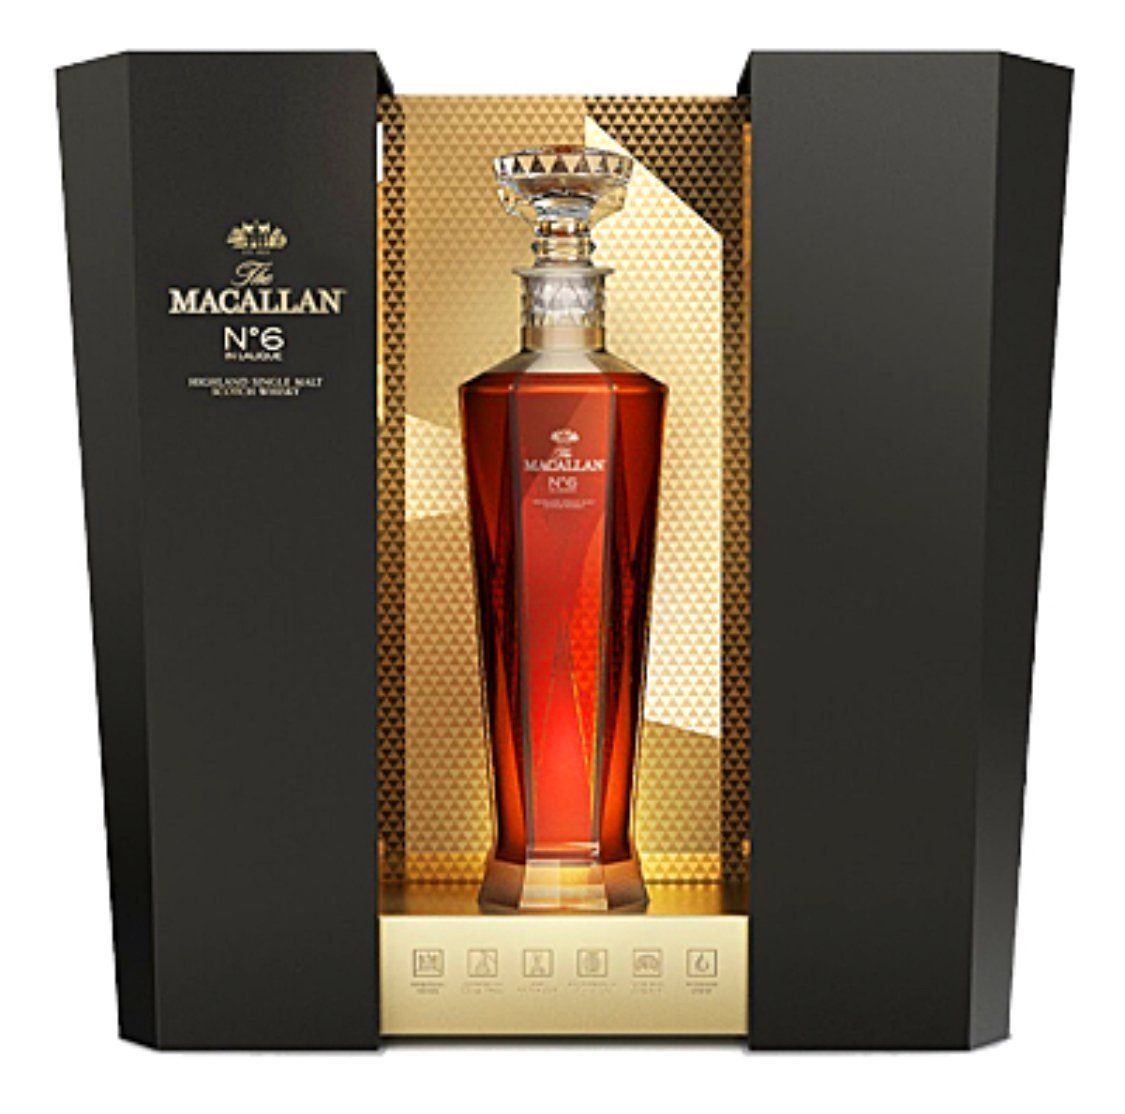 Macallan No.6 in Lalique Decanter